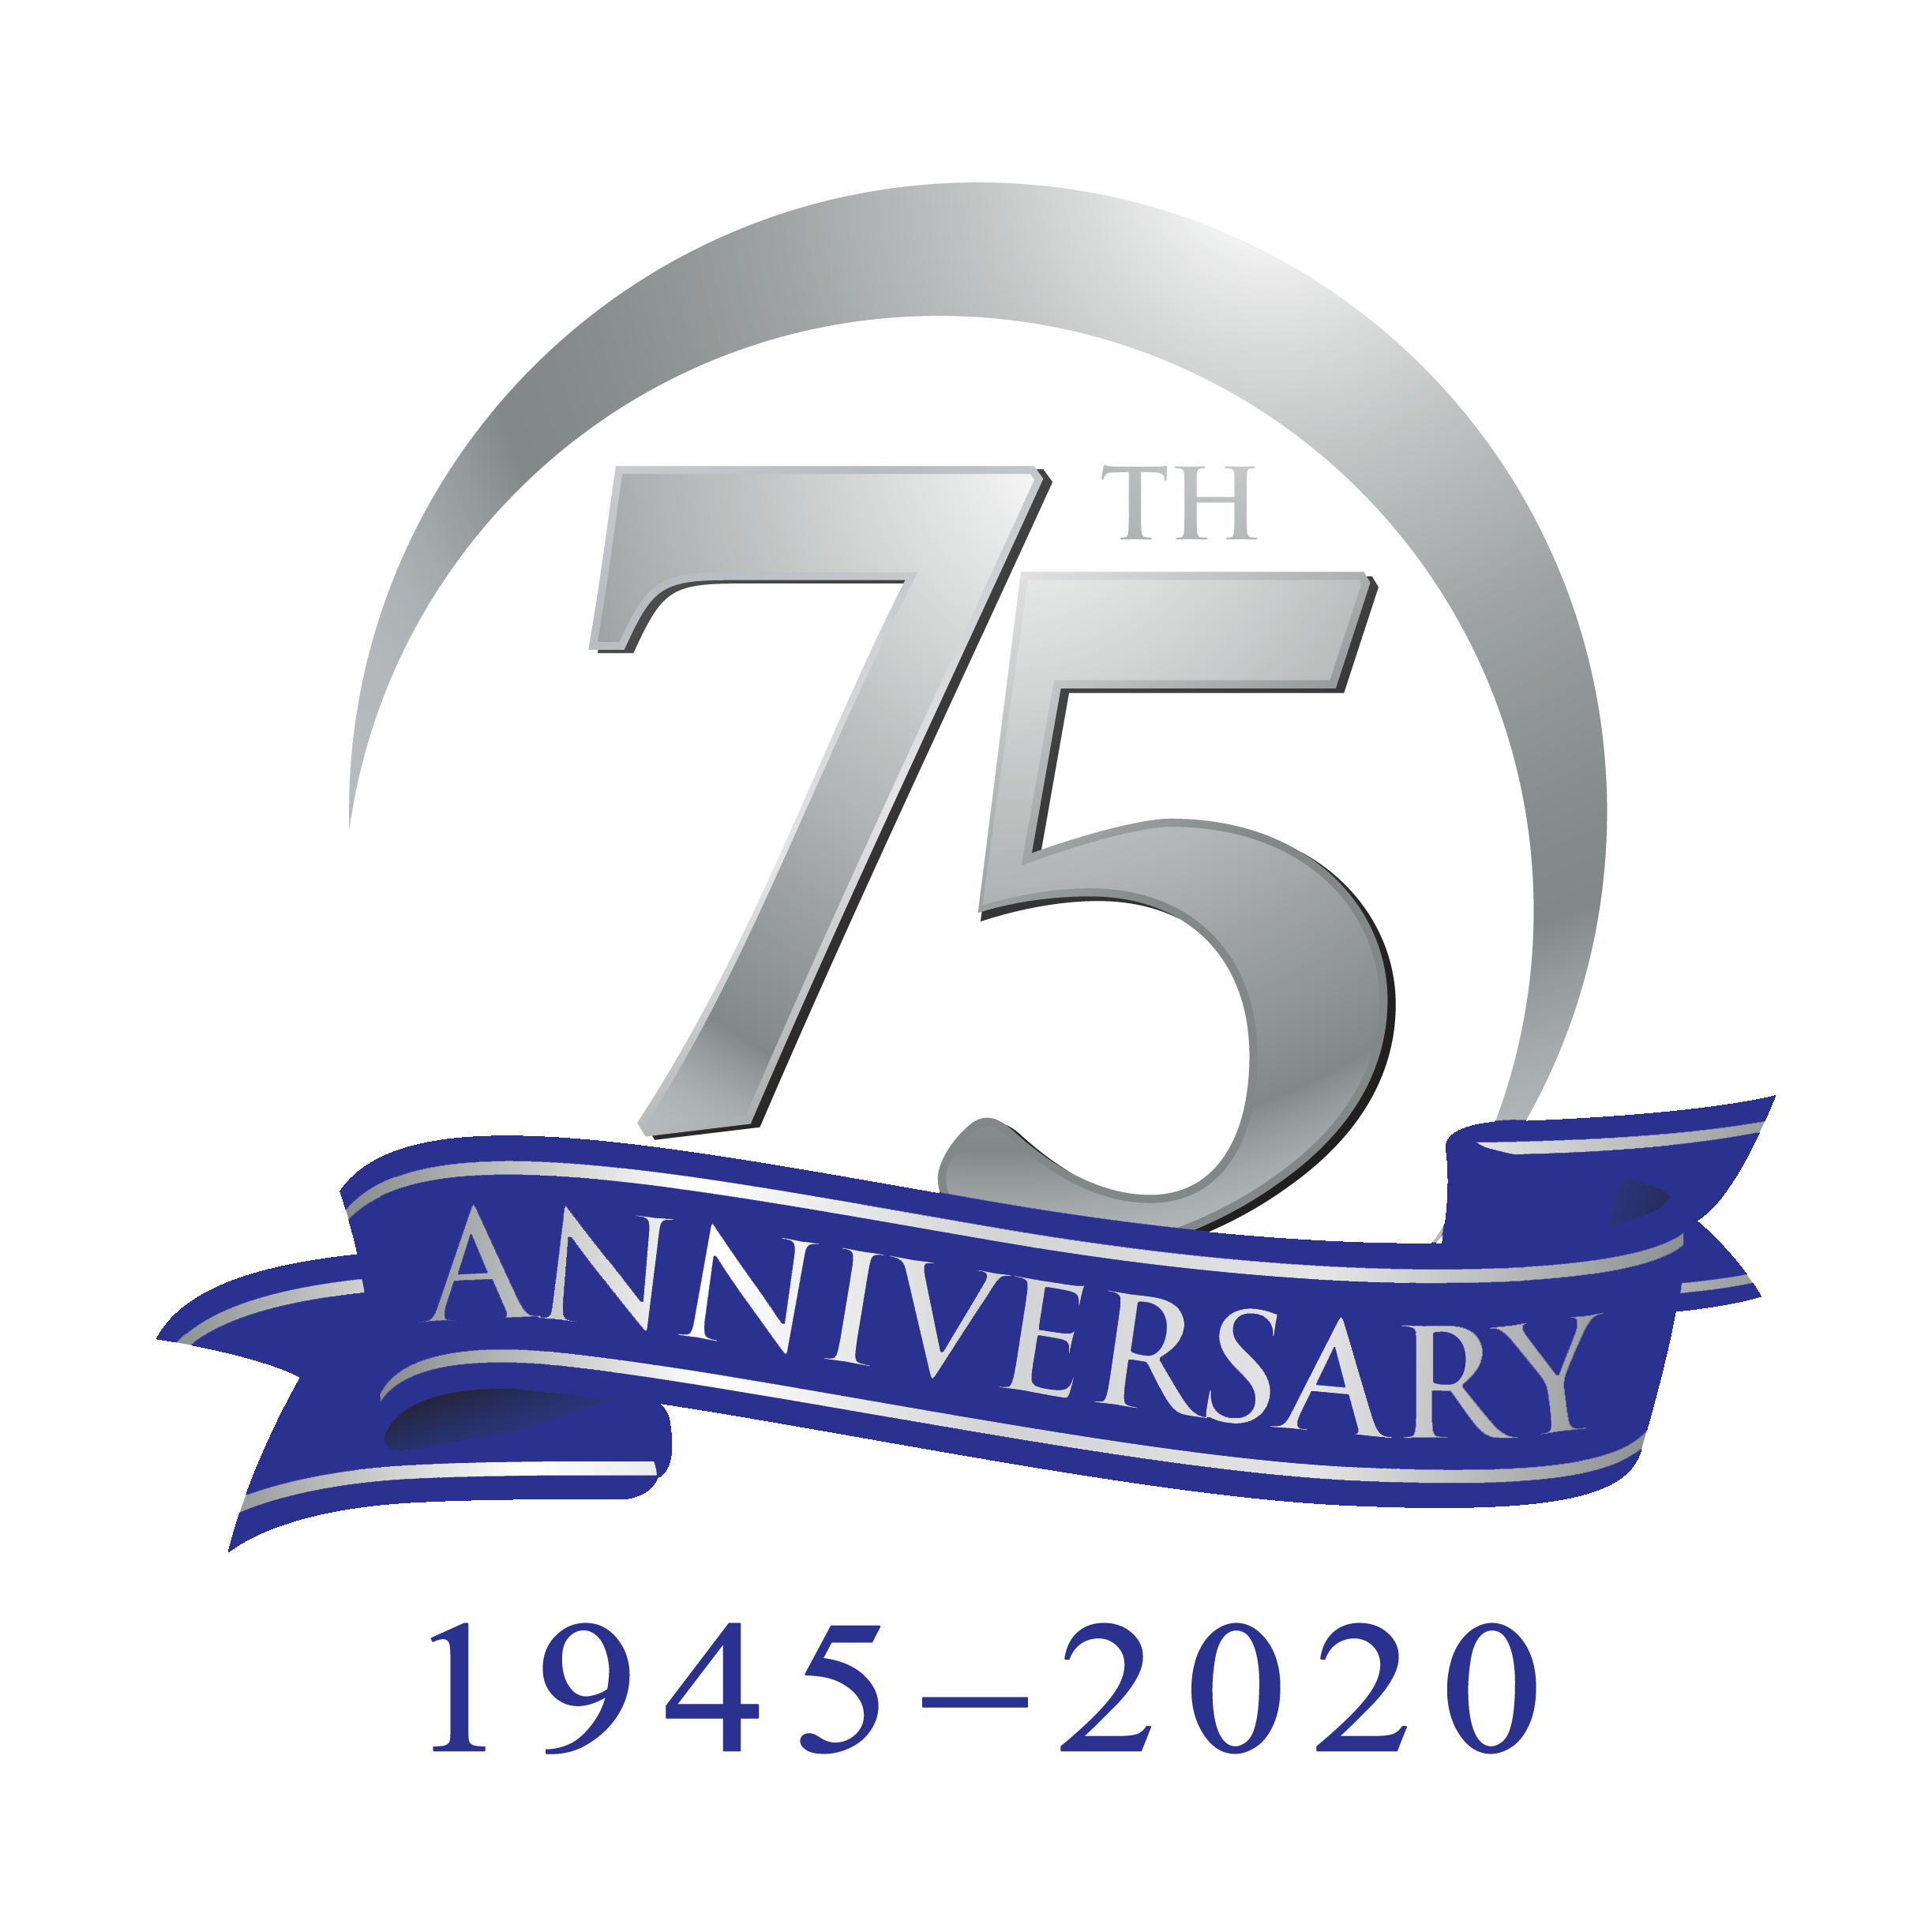 W.D. Manor celebrates 70th Year Anniversary